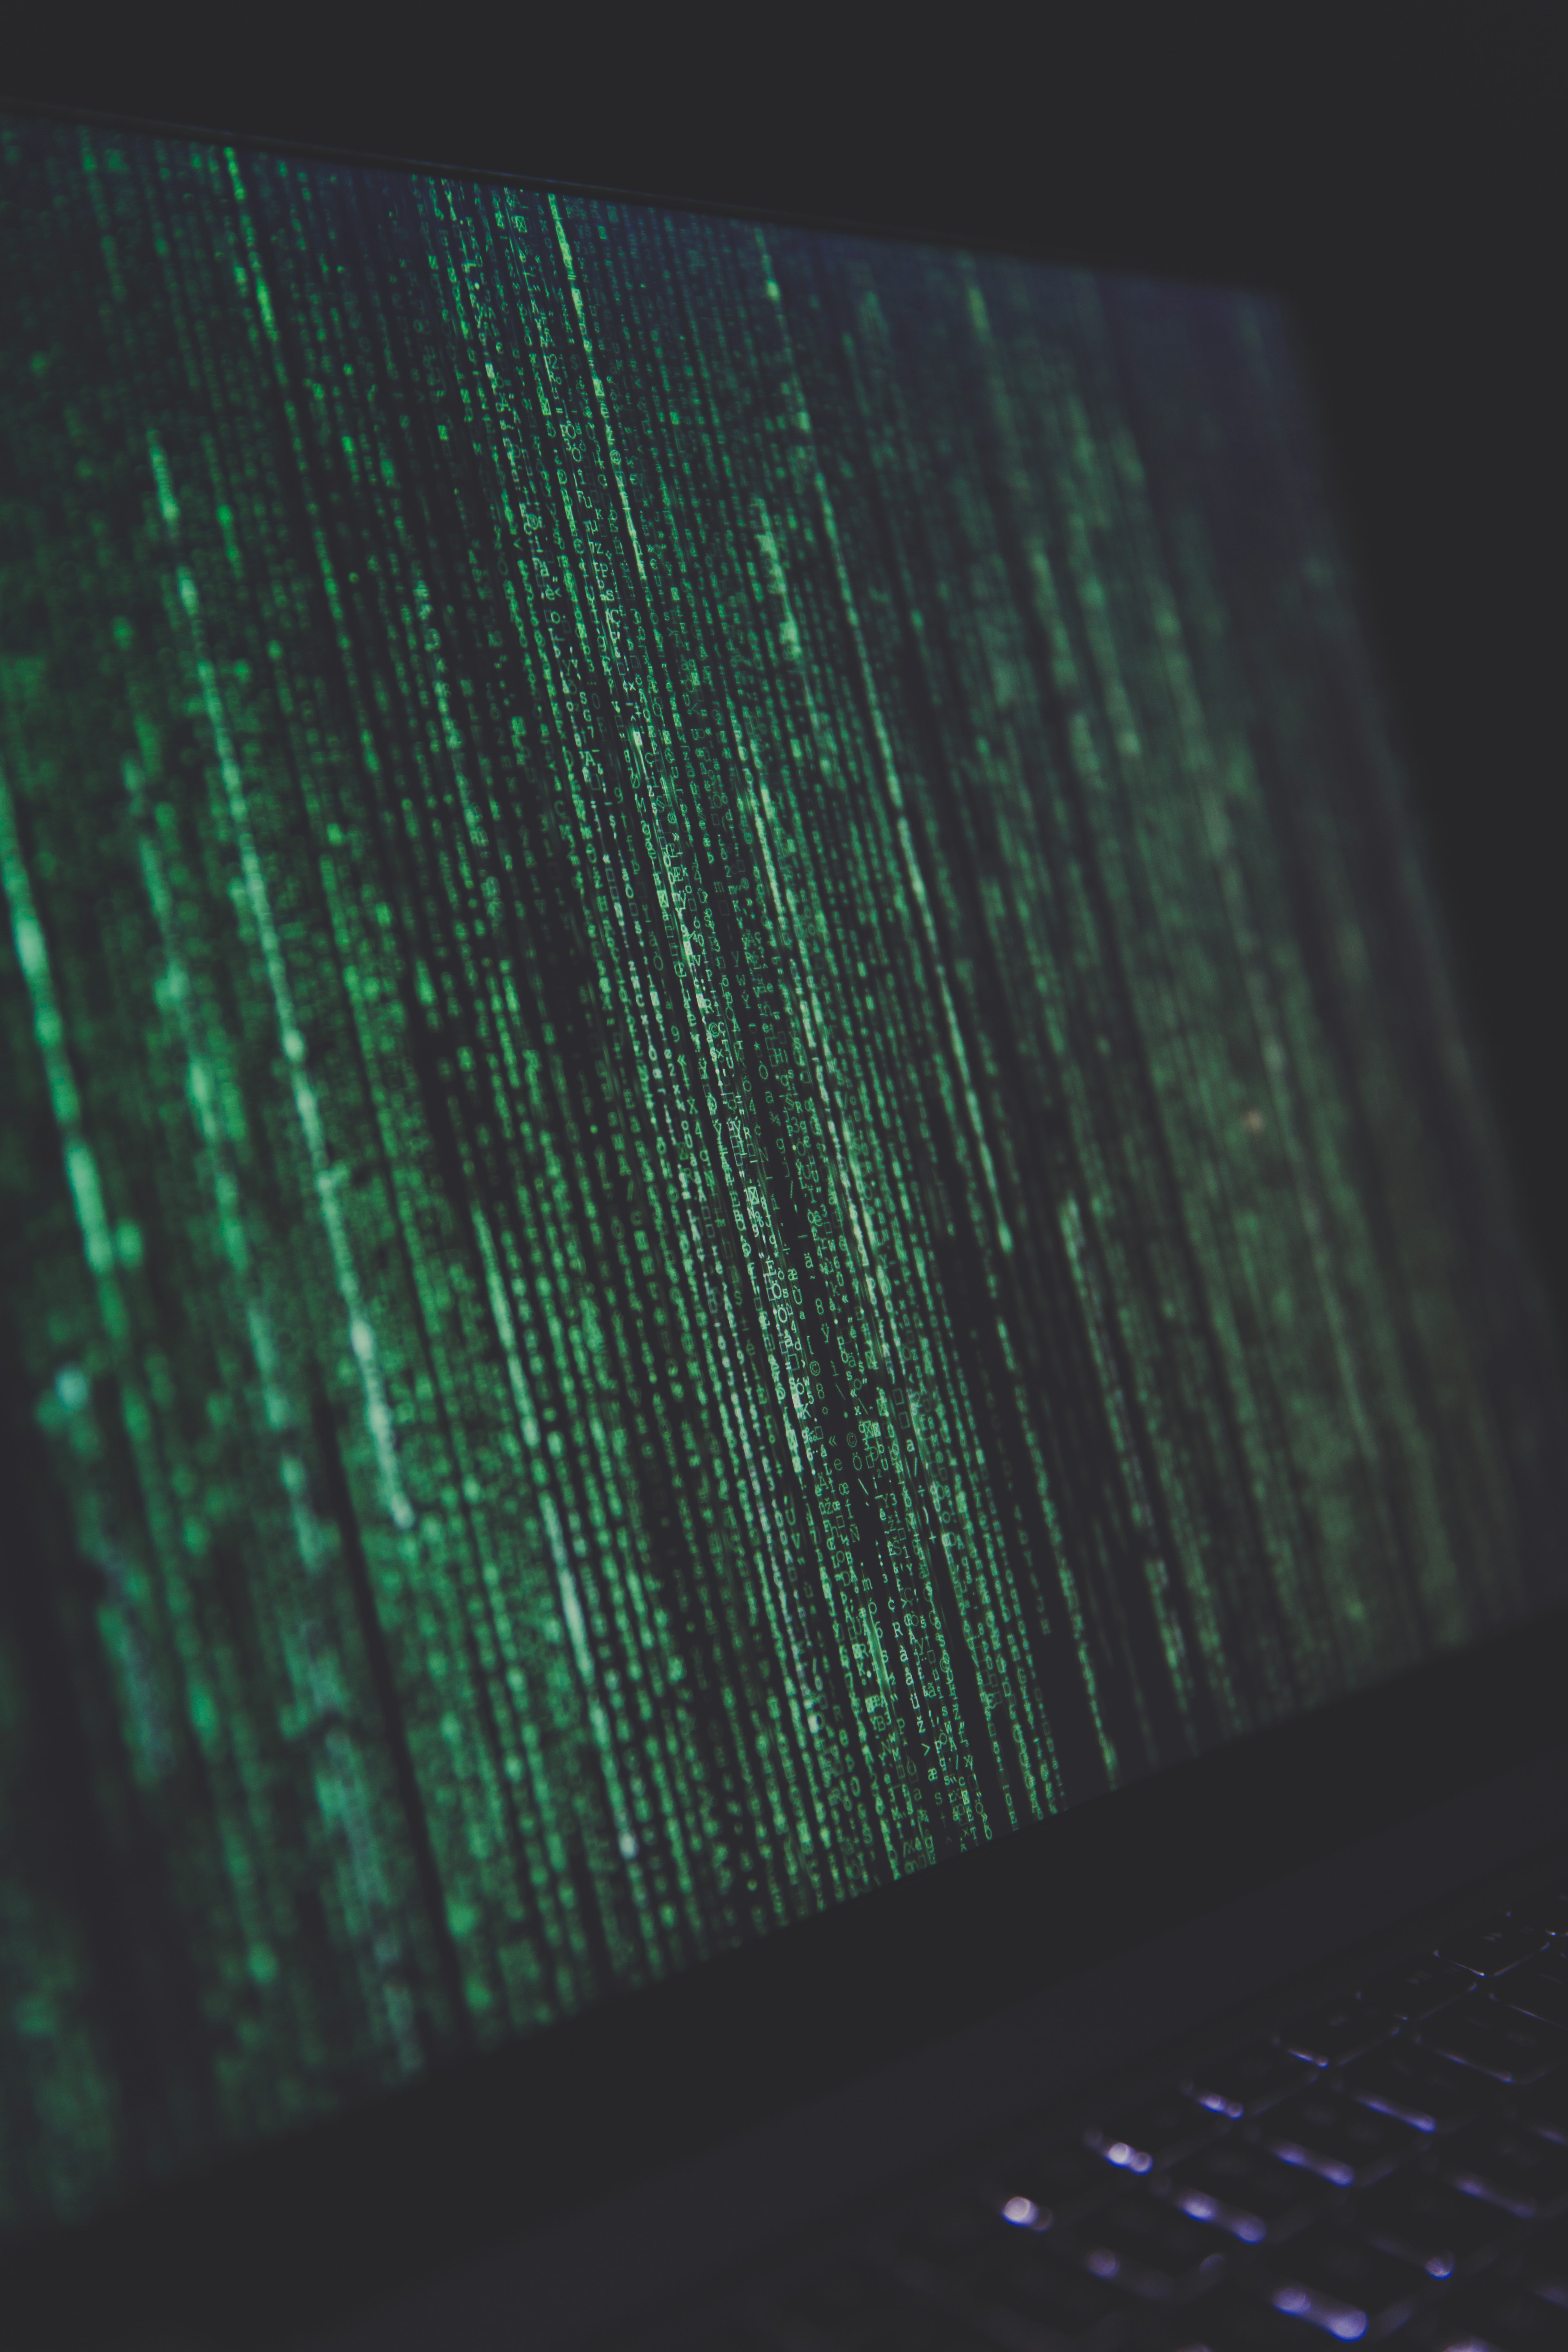 Cryptography at the core of security technologies